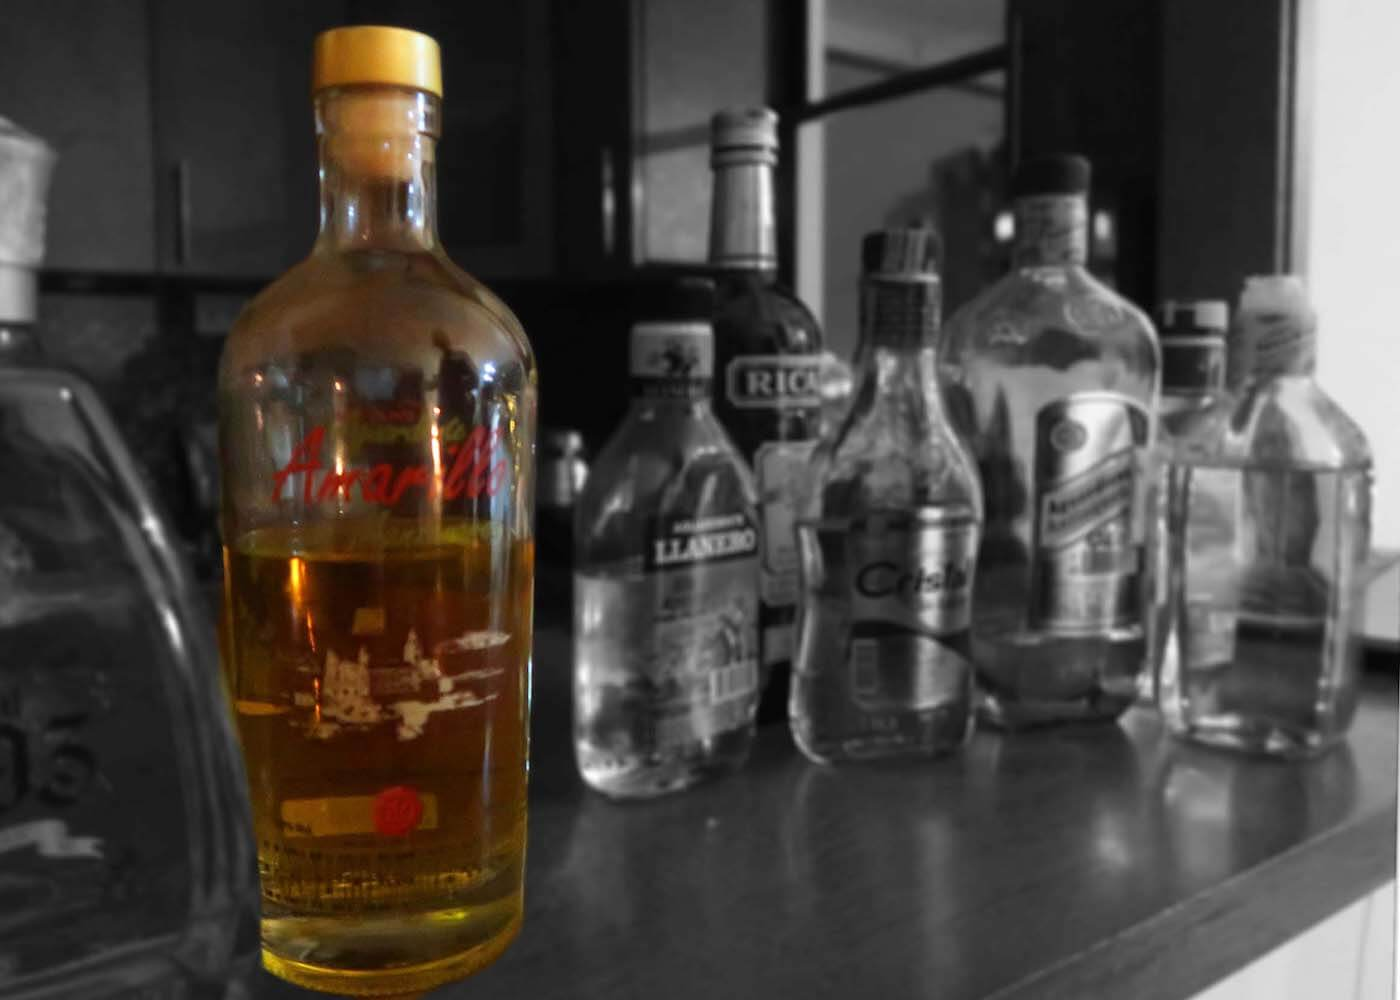 aguardiente amarillo de manzanares, the best aguardiente from our blind taste test